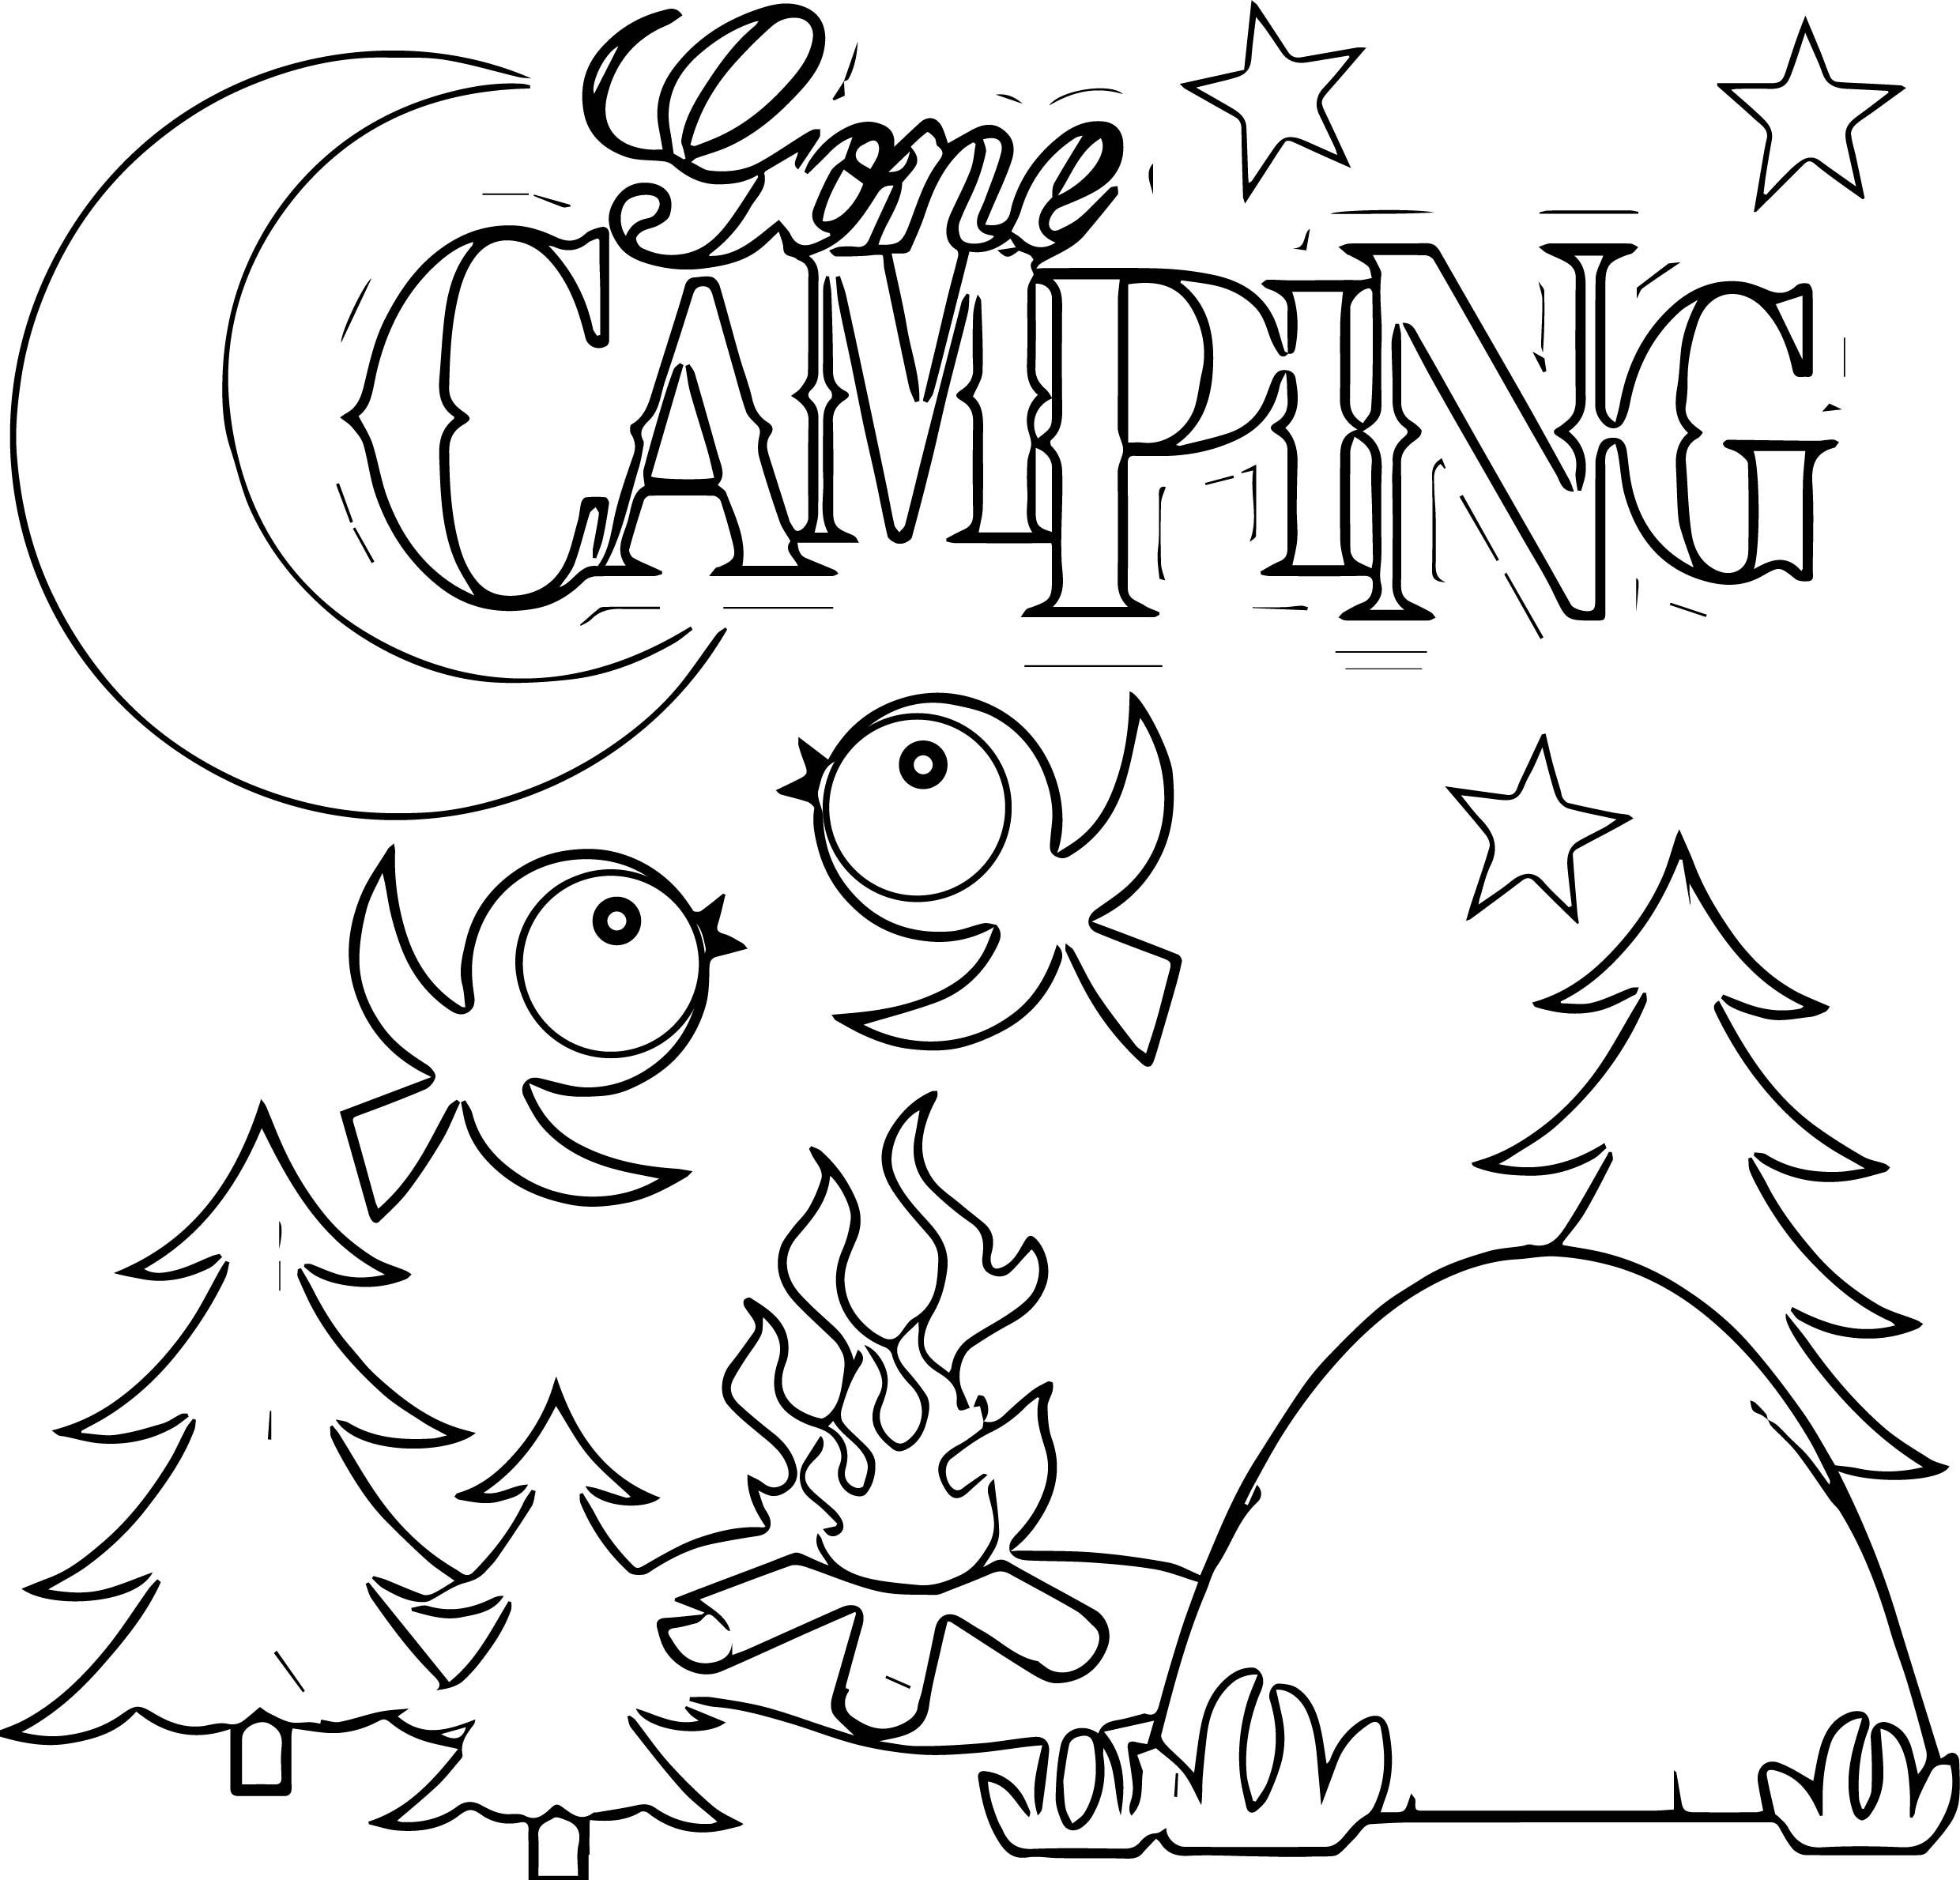 Cool Camping Gone Bird Coloring Page